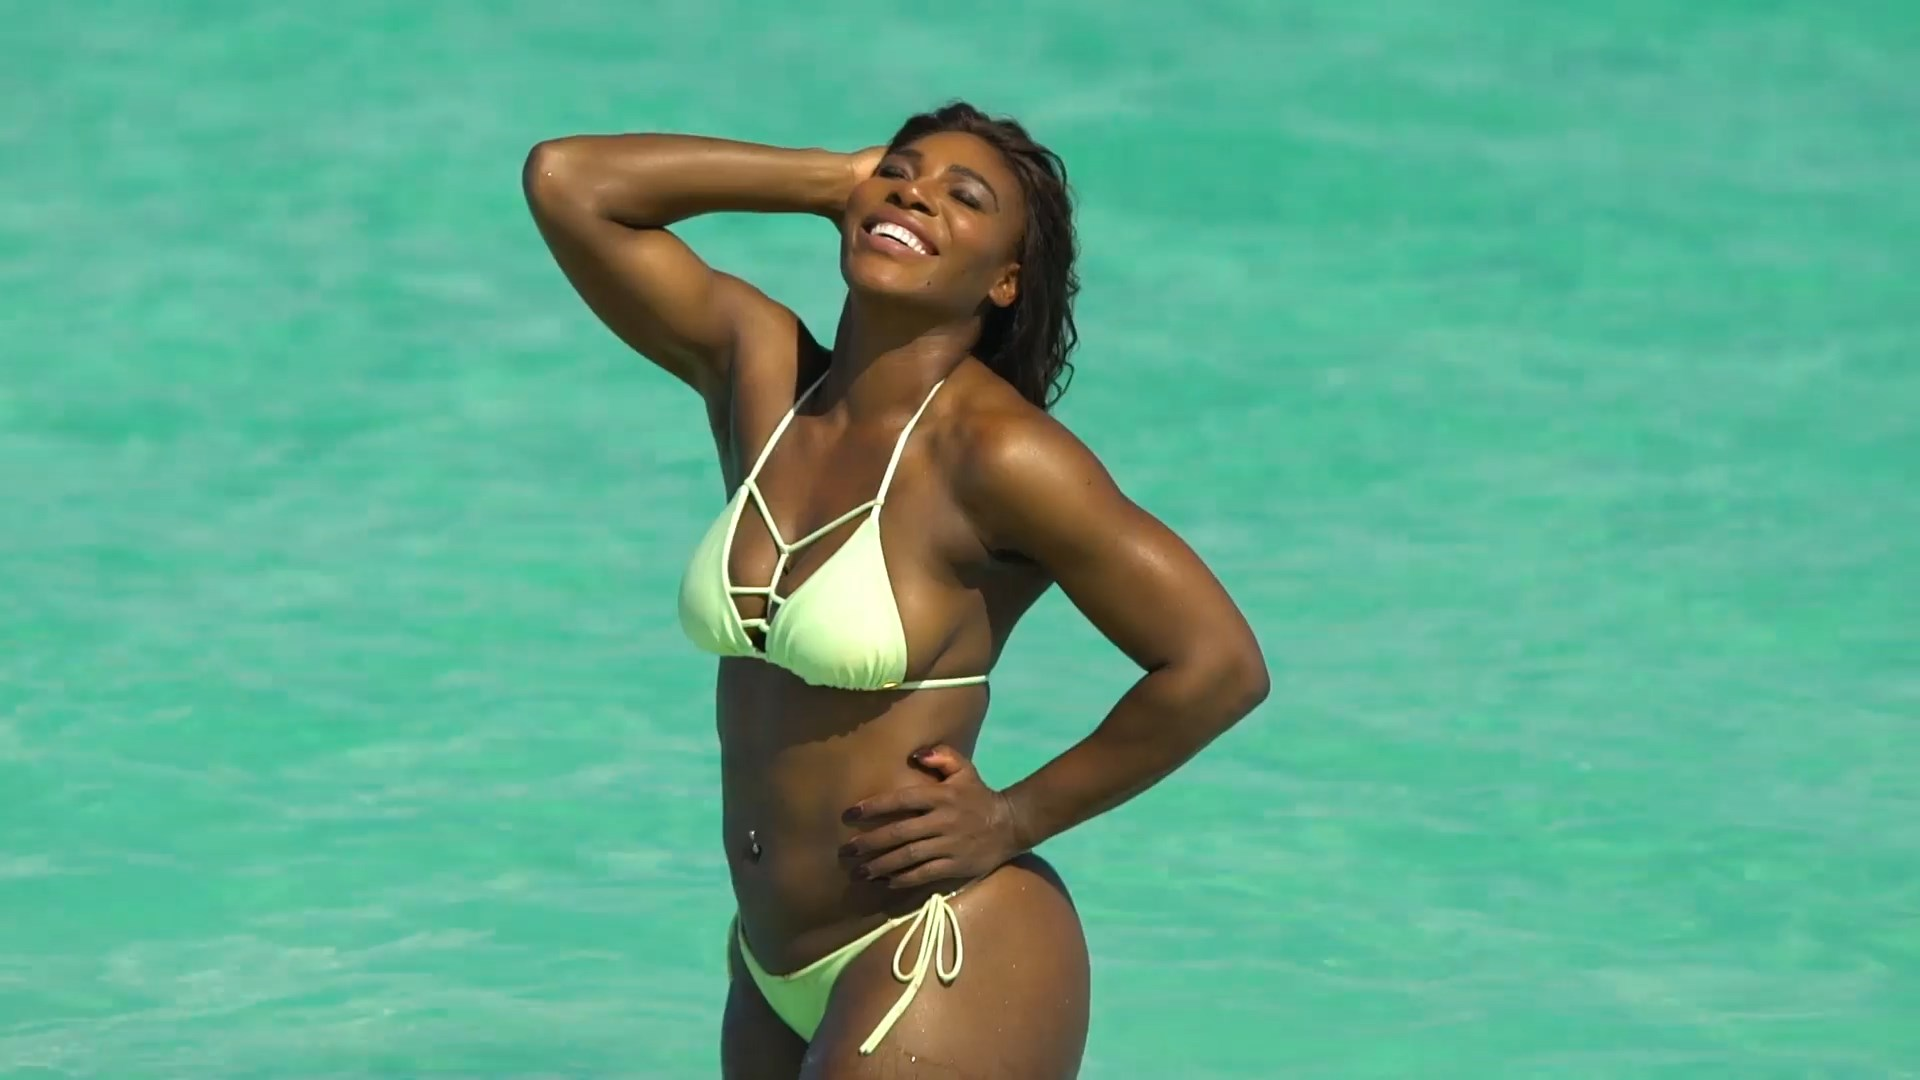 Ding Tennis Player Serena Williams Naked Leaked Photos -3003